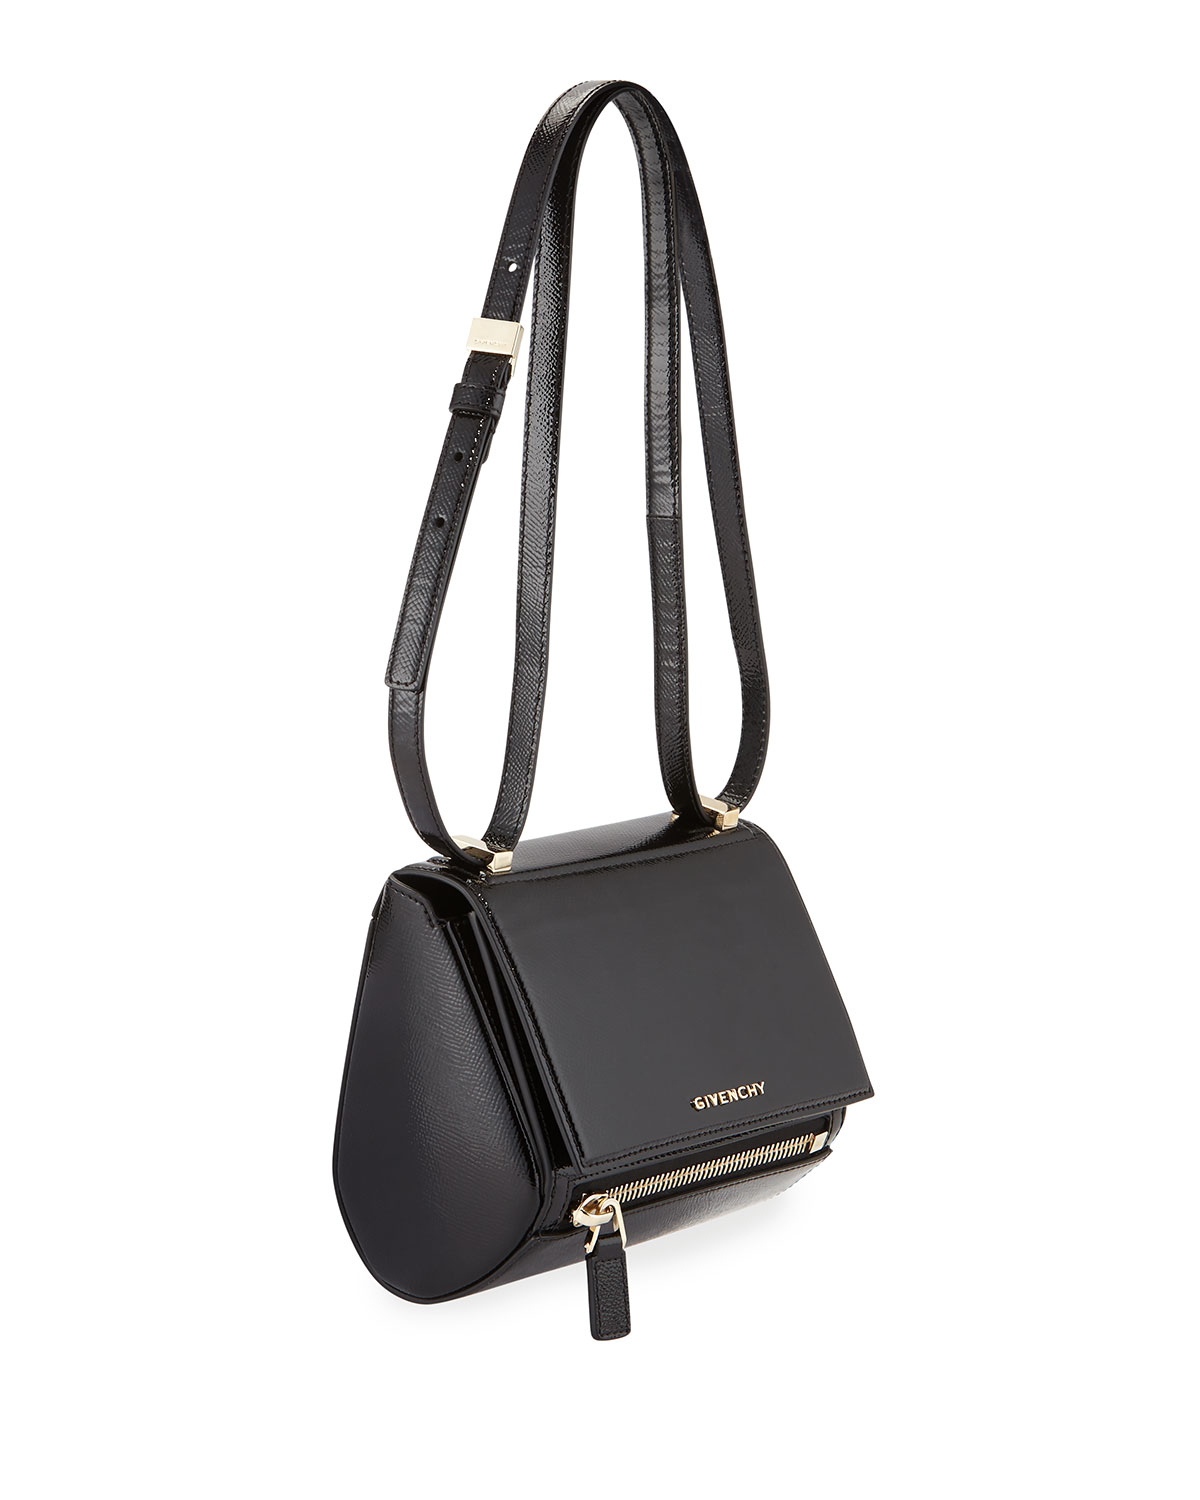 2be0c487bde Gallery. Previously sold at  Neiman Marcus · Women s Givenchy Nightingale  Women s Saint Laurent Loulou Bag ...